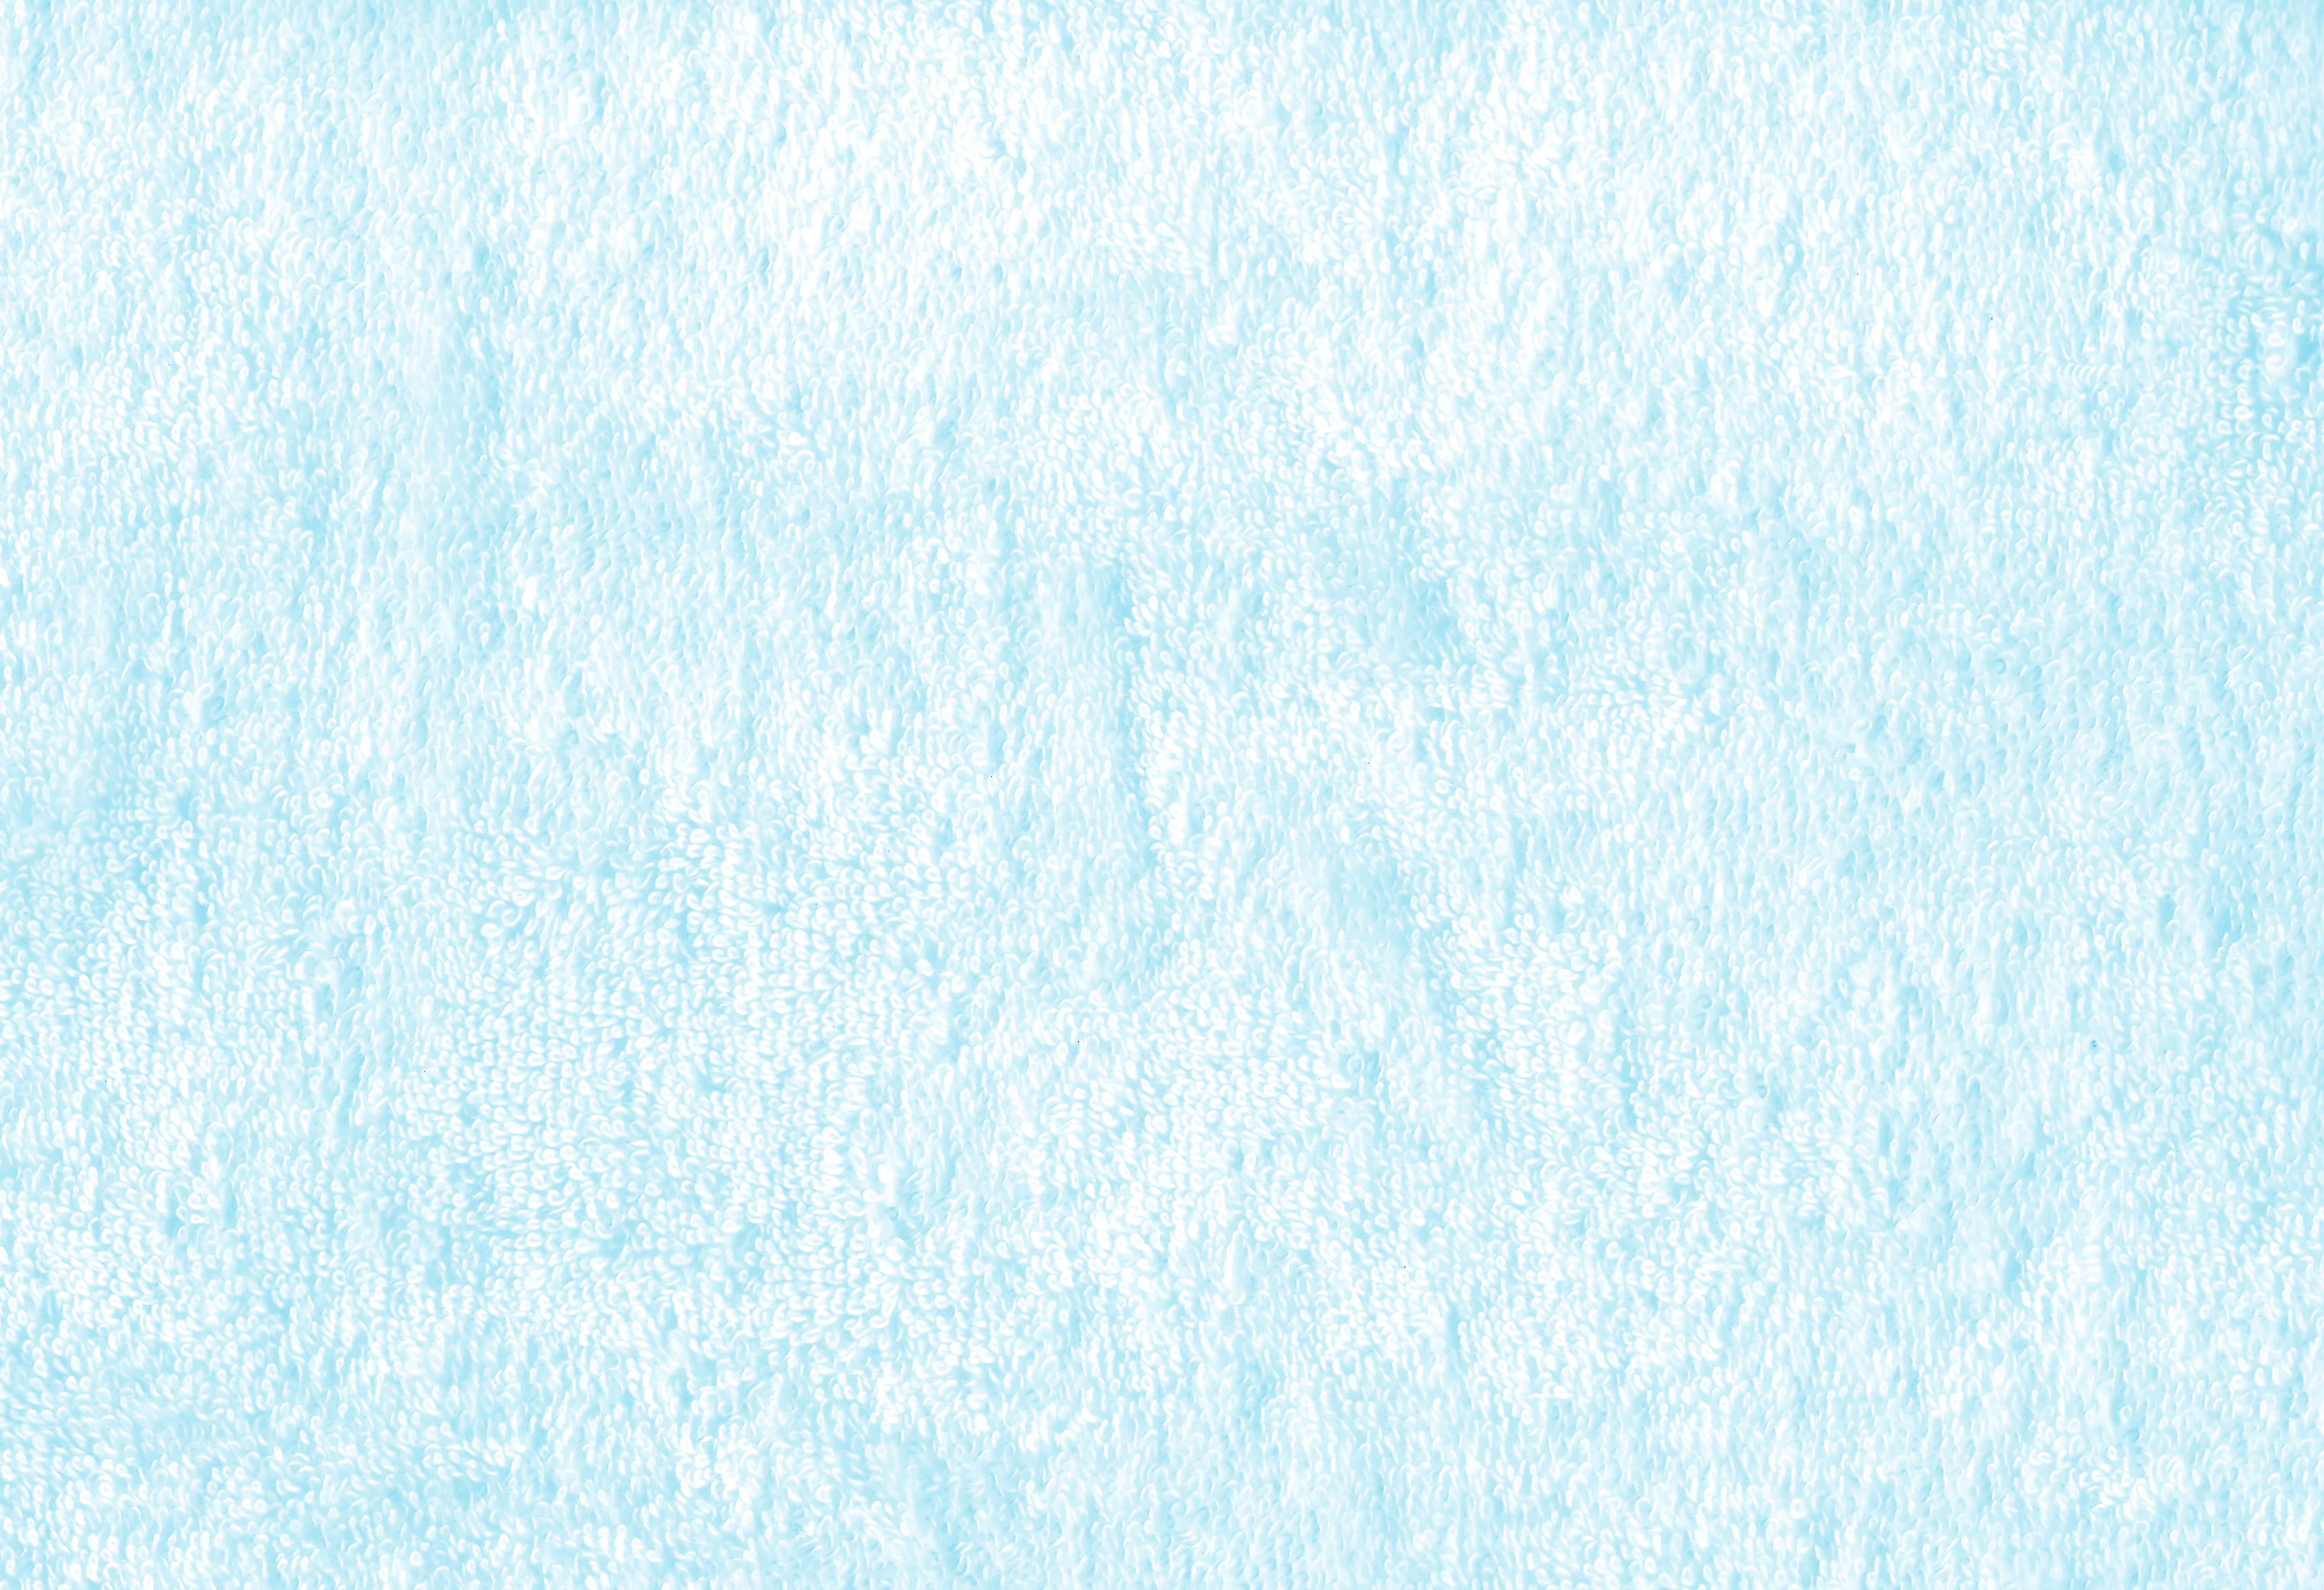 Baby Blue Terry Cloth Towel Texture Picture Free Photograph